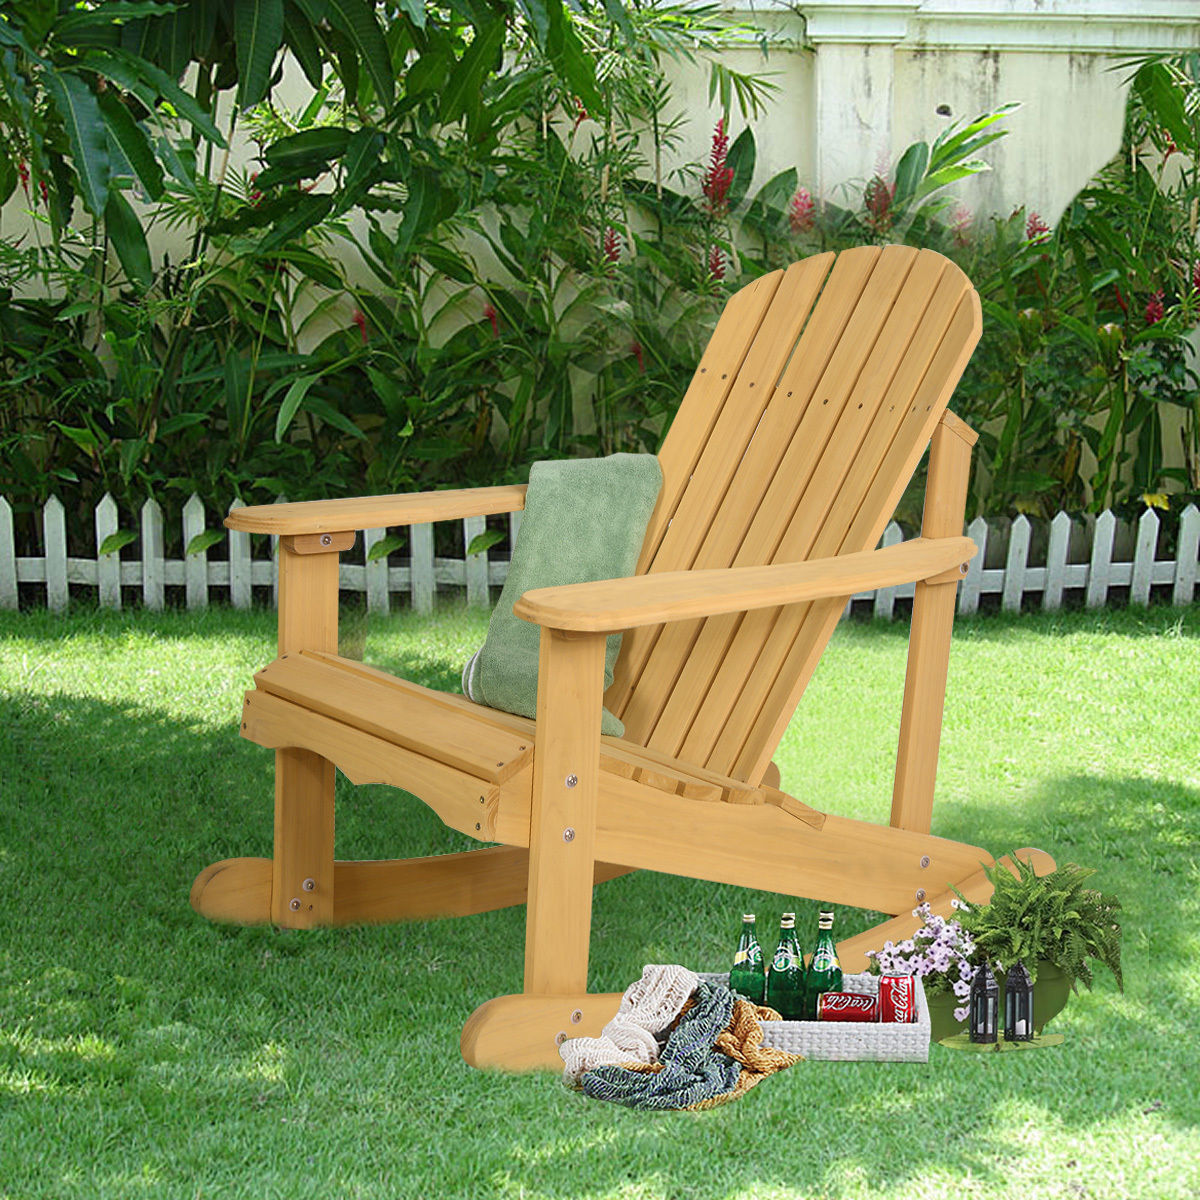 Garden Furniture - Outdoor Natural Fir Wood Adirondack Rocking Chair Patio Deck Garden Furniture